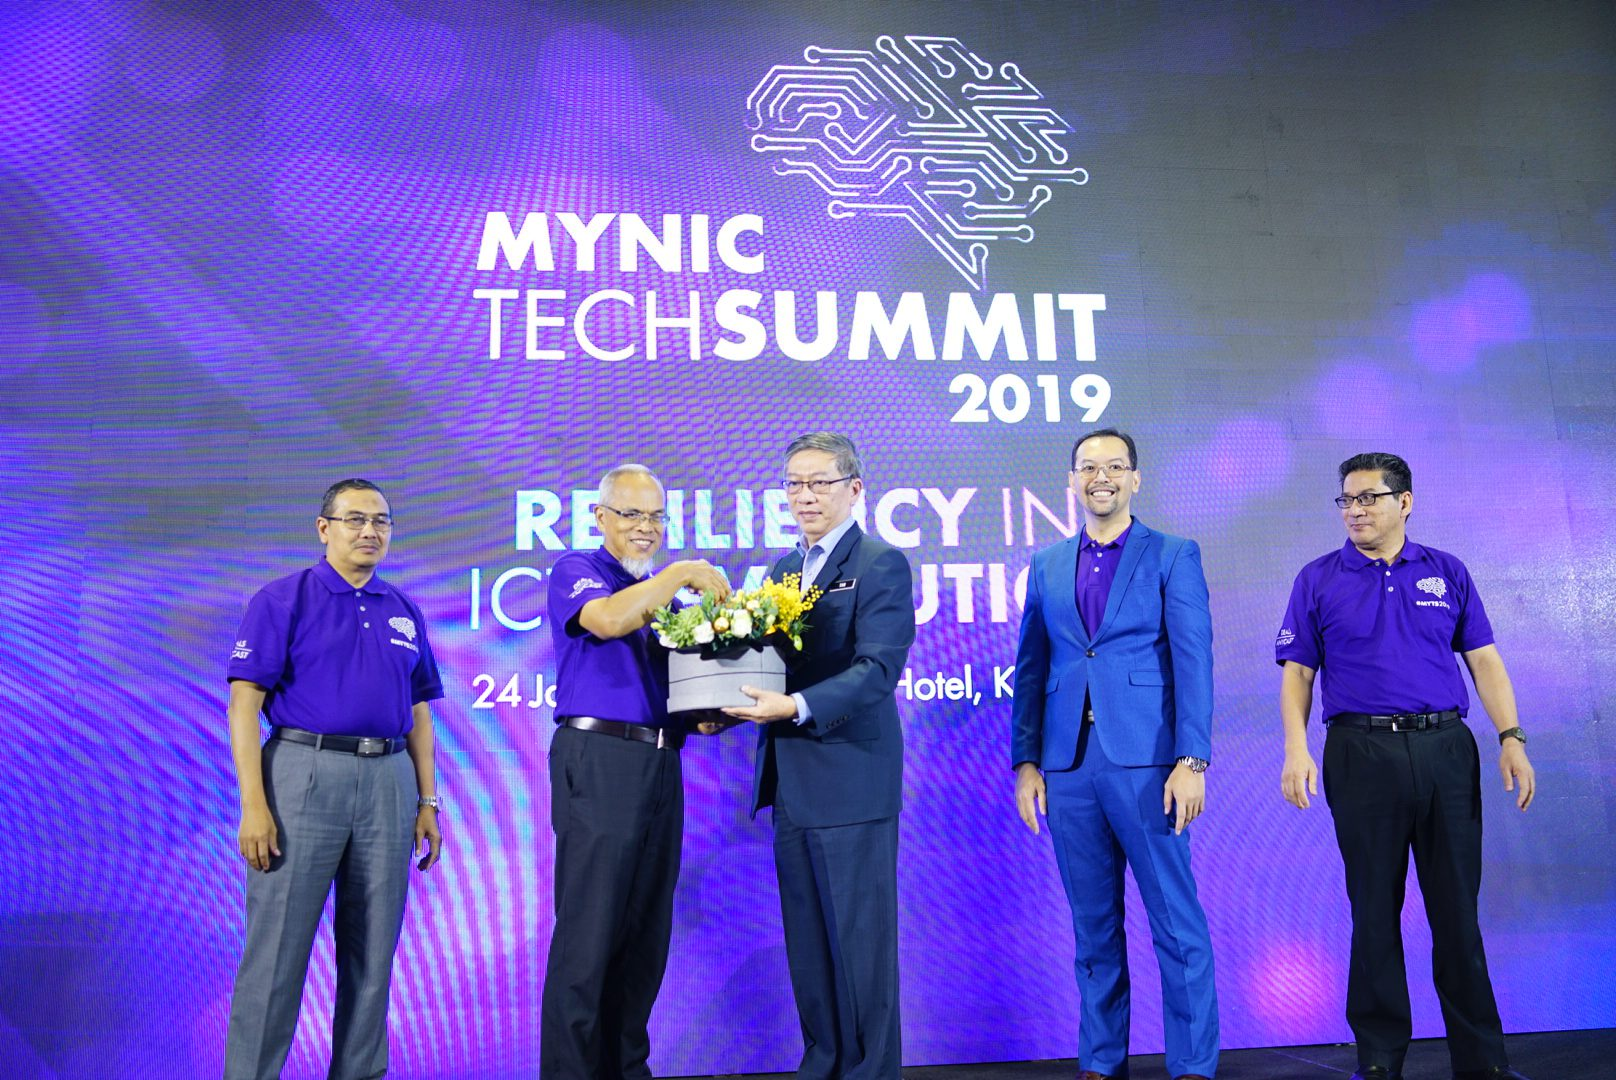 MYNIC Tech Summit 2019